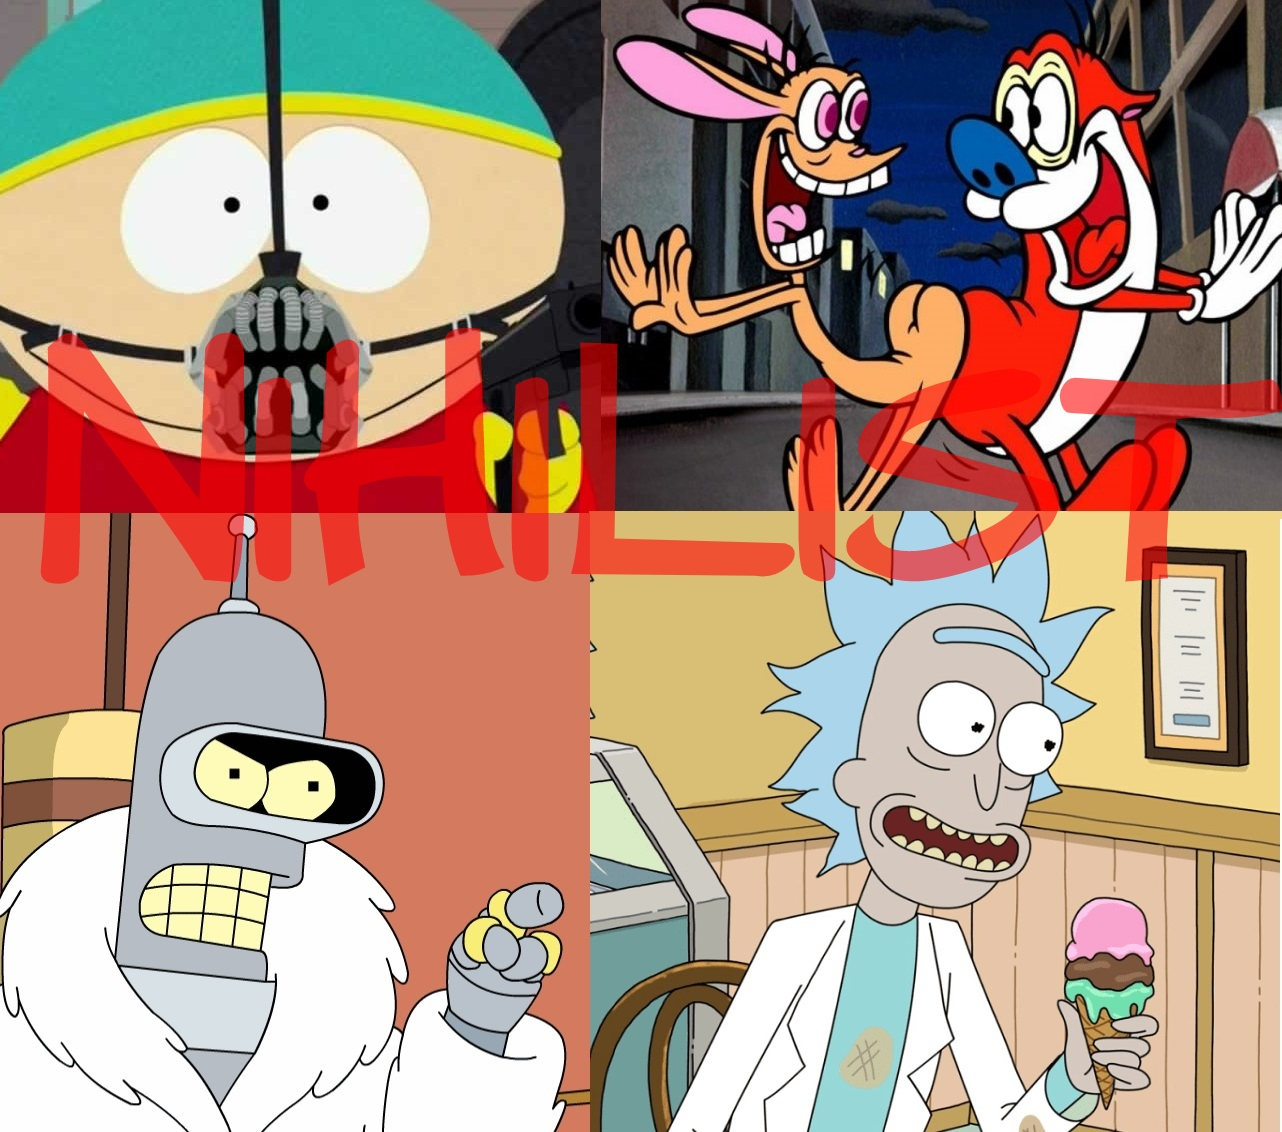 Top 10 Nihilist Cartoon Characters of All Time